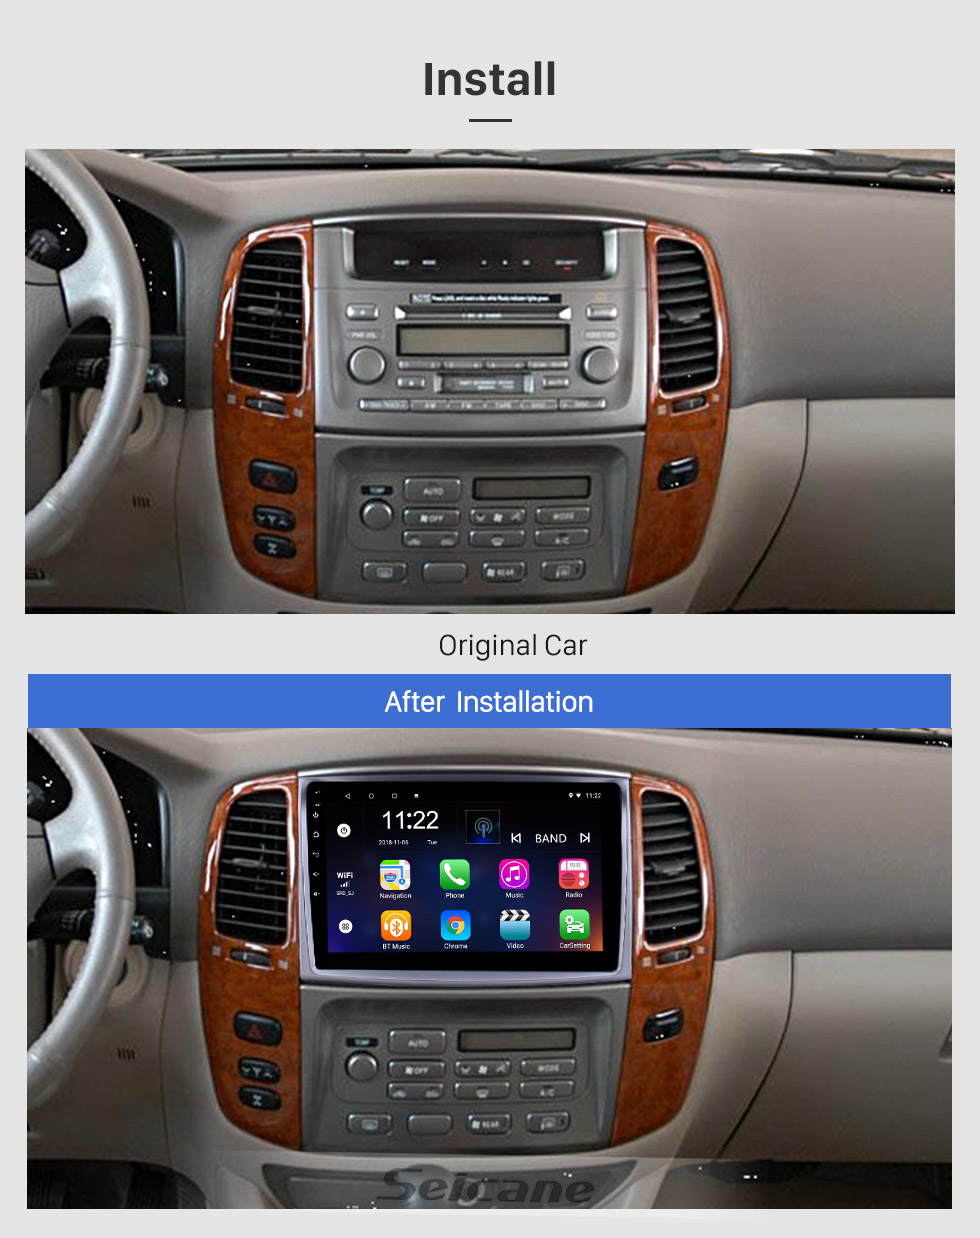 Seicane 10.1 inch Android 8.1 GPS Navigation Radio for 2006 Toyota Cruiser with HD Touchscreen Bluetooth USB support Carplay TPMS